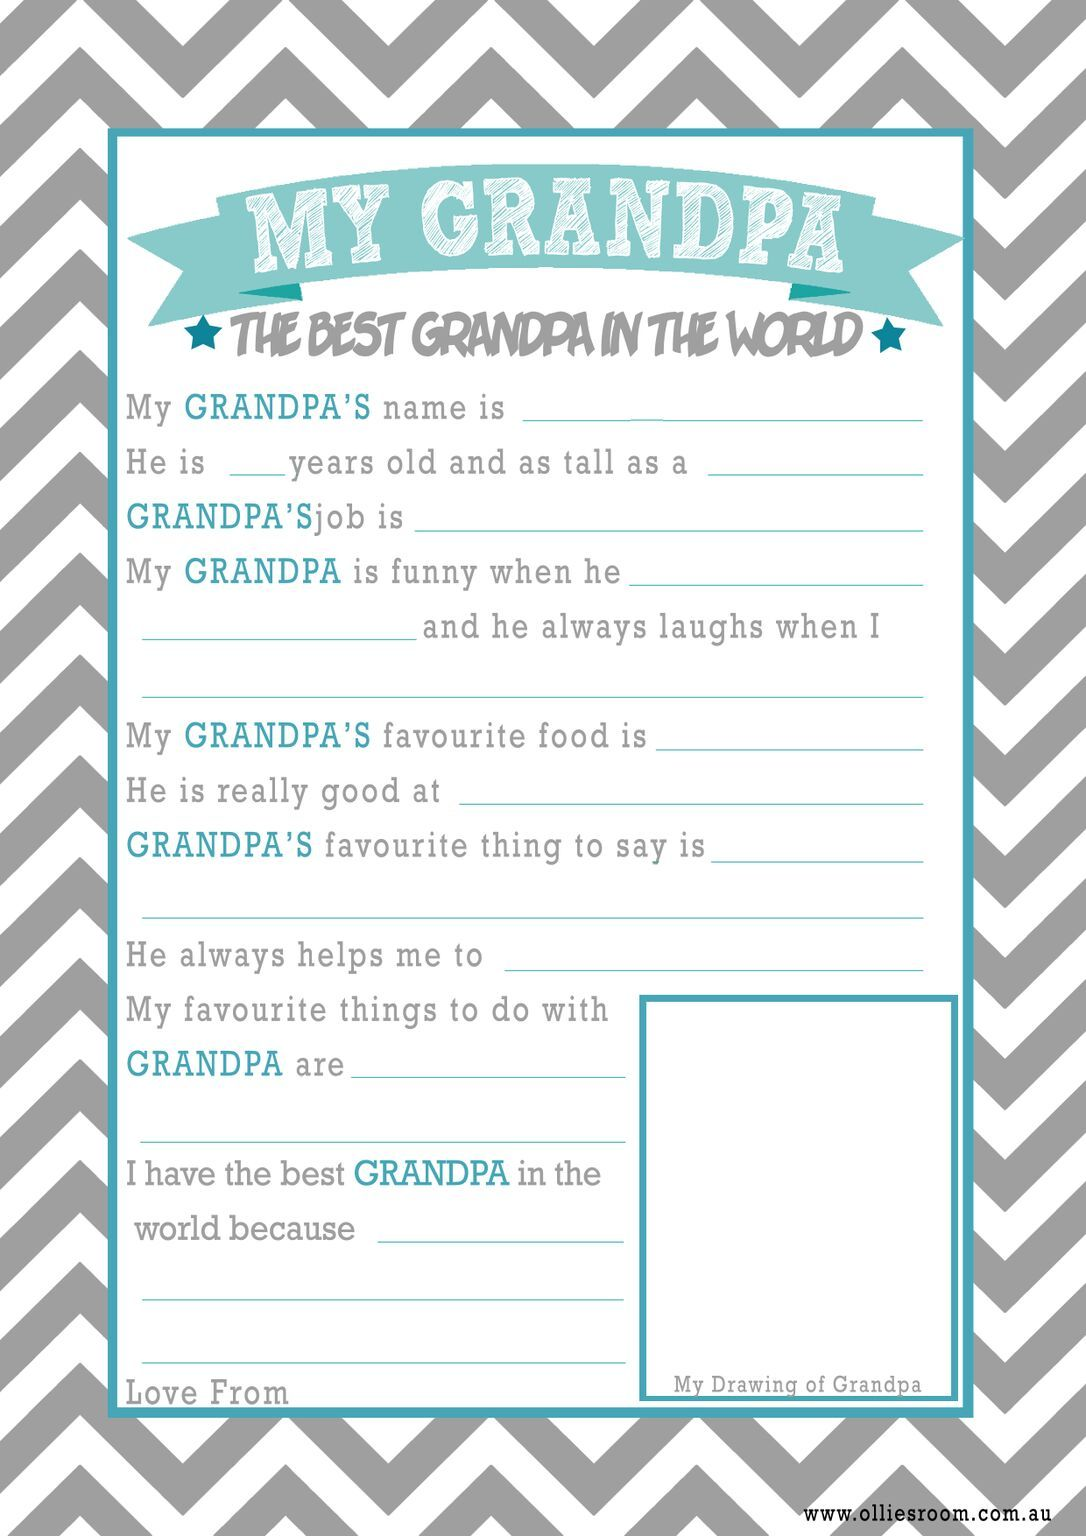 Stupendous image intended for all about grandpa printable